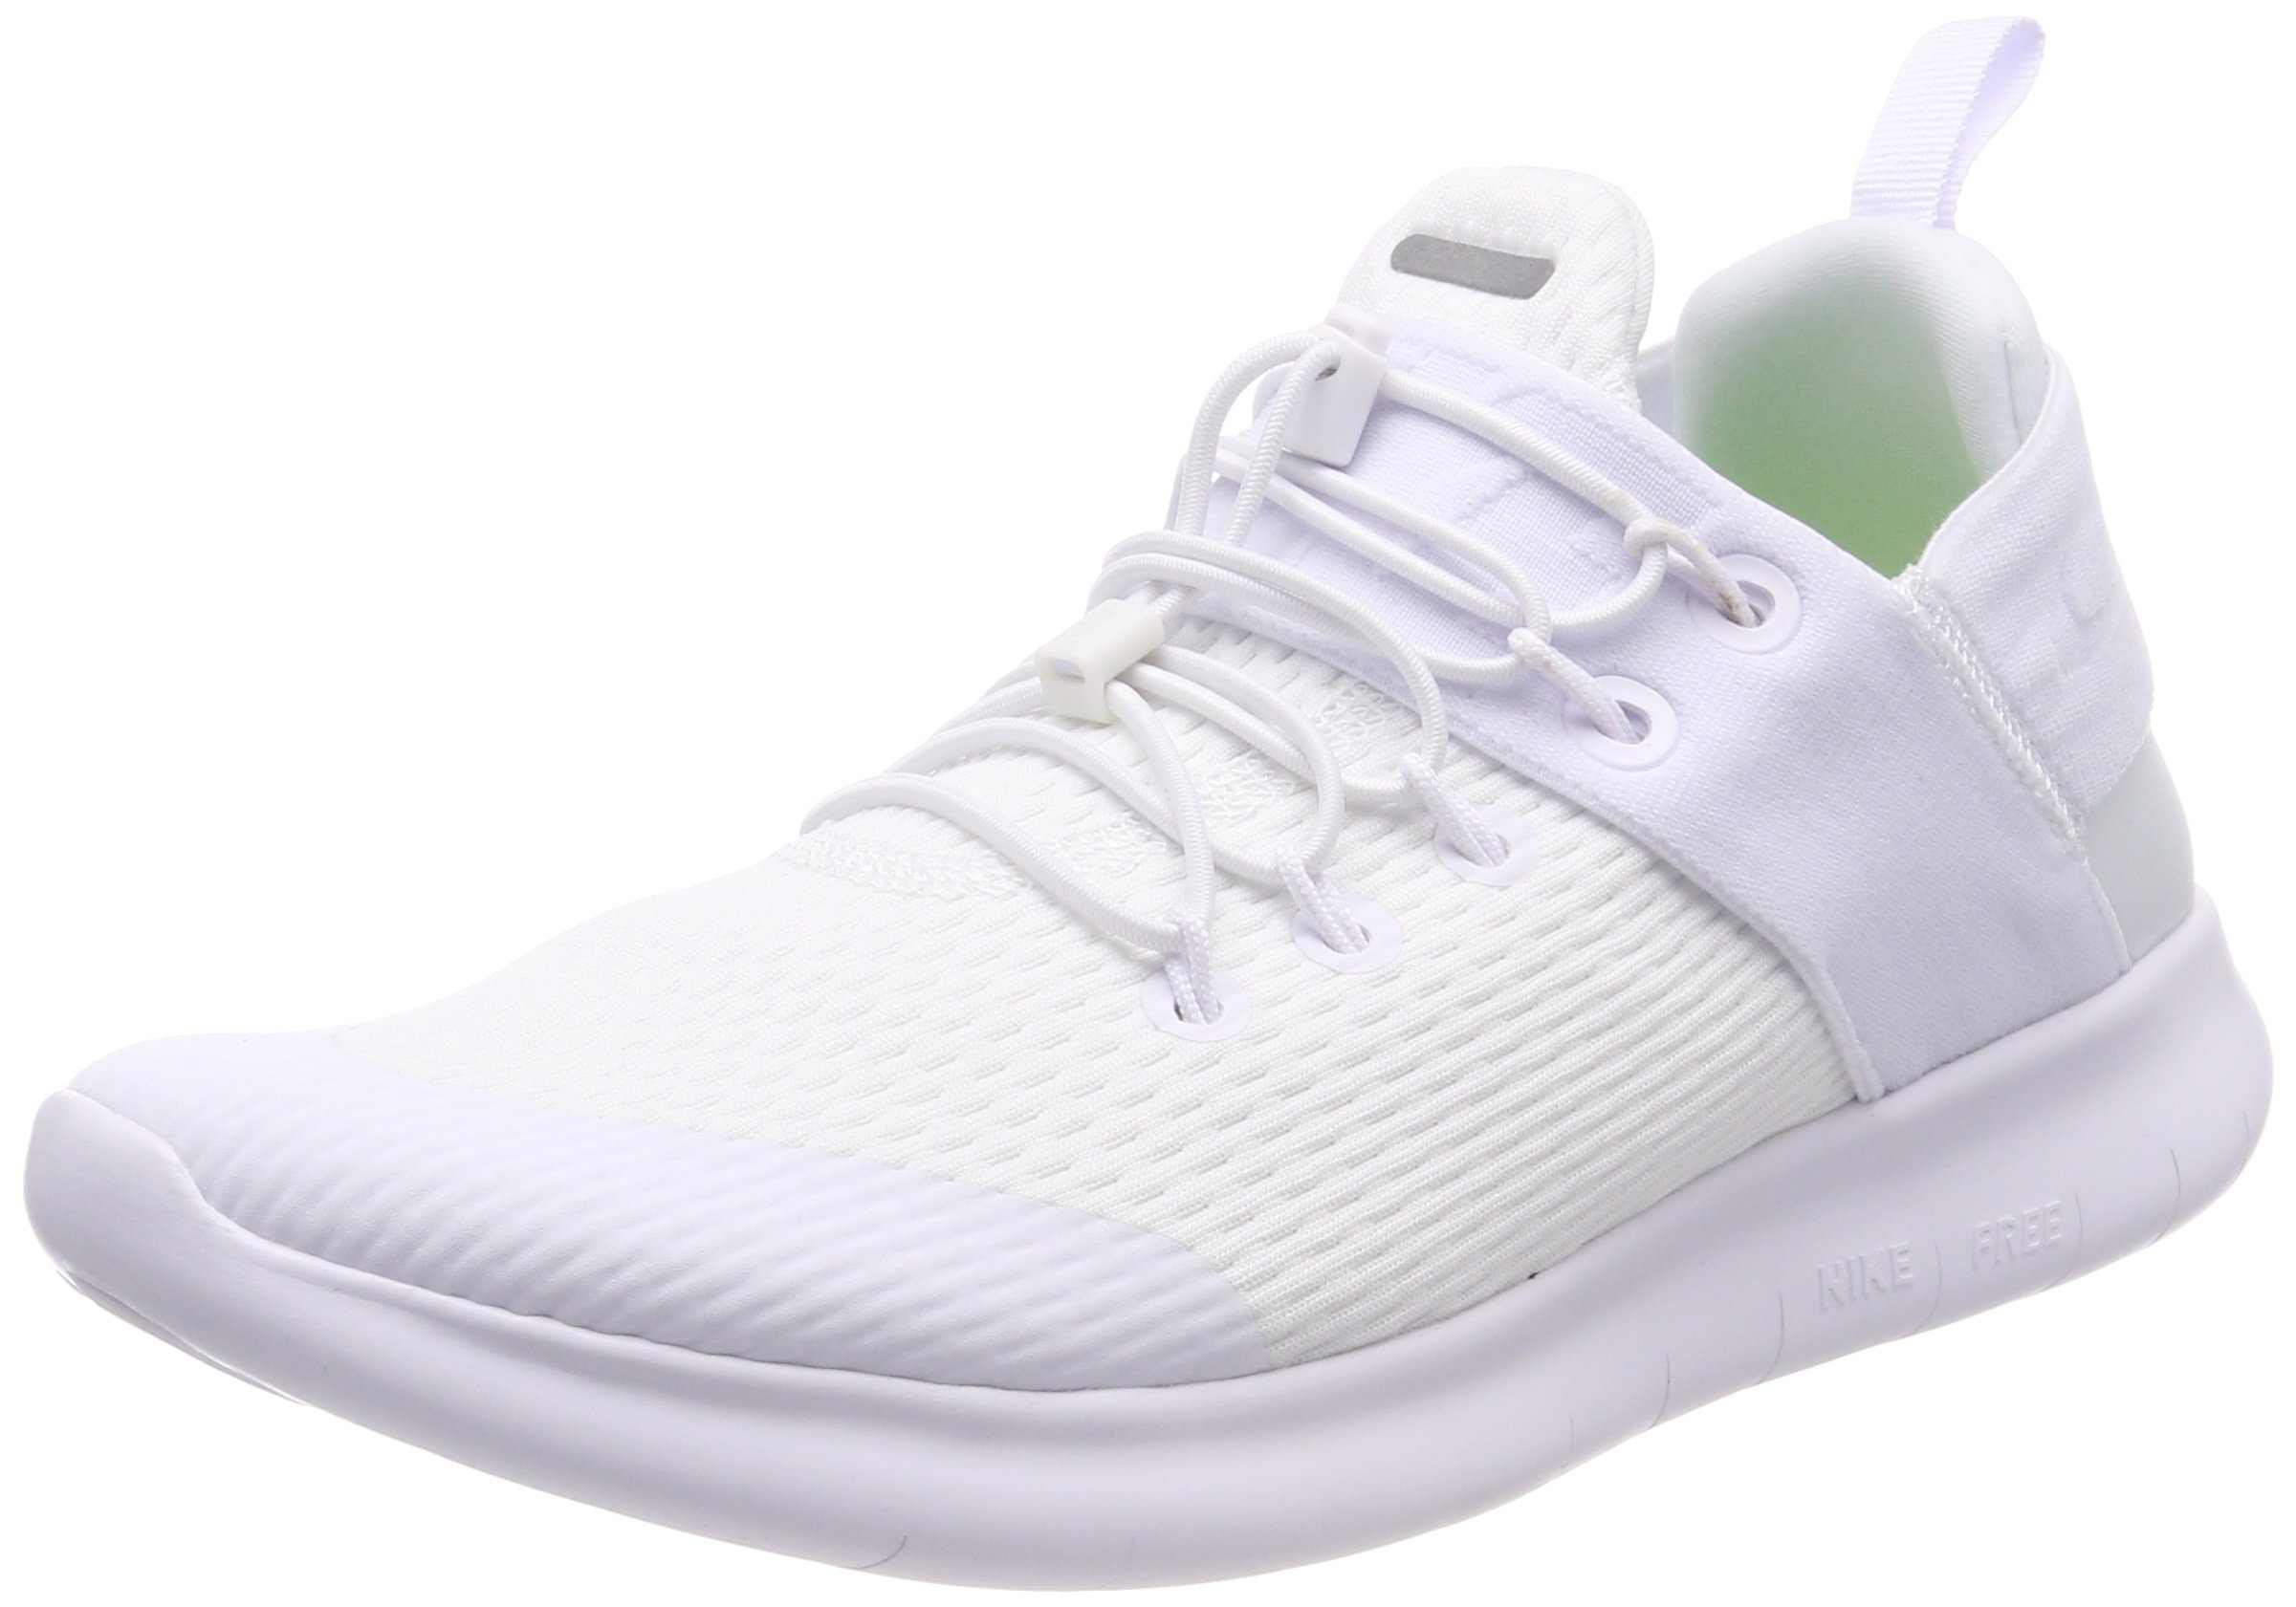 Women's Nike Free RN Commuter 2017 Running Shoes WhiteNew